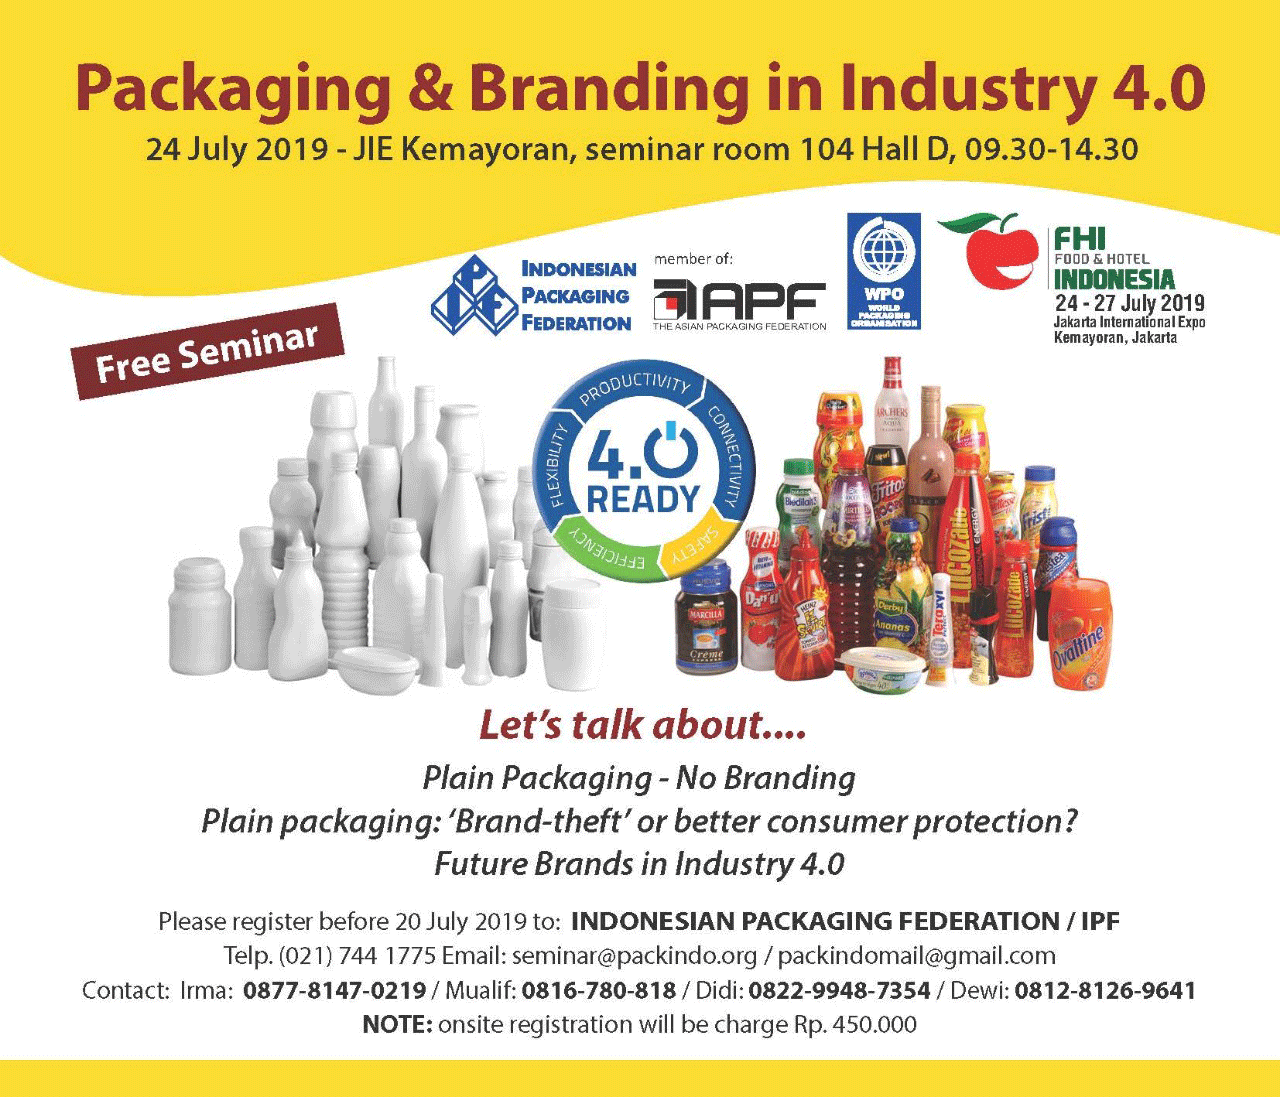 Indonesian Packaging Federation – Member of Asian Packaging Federation